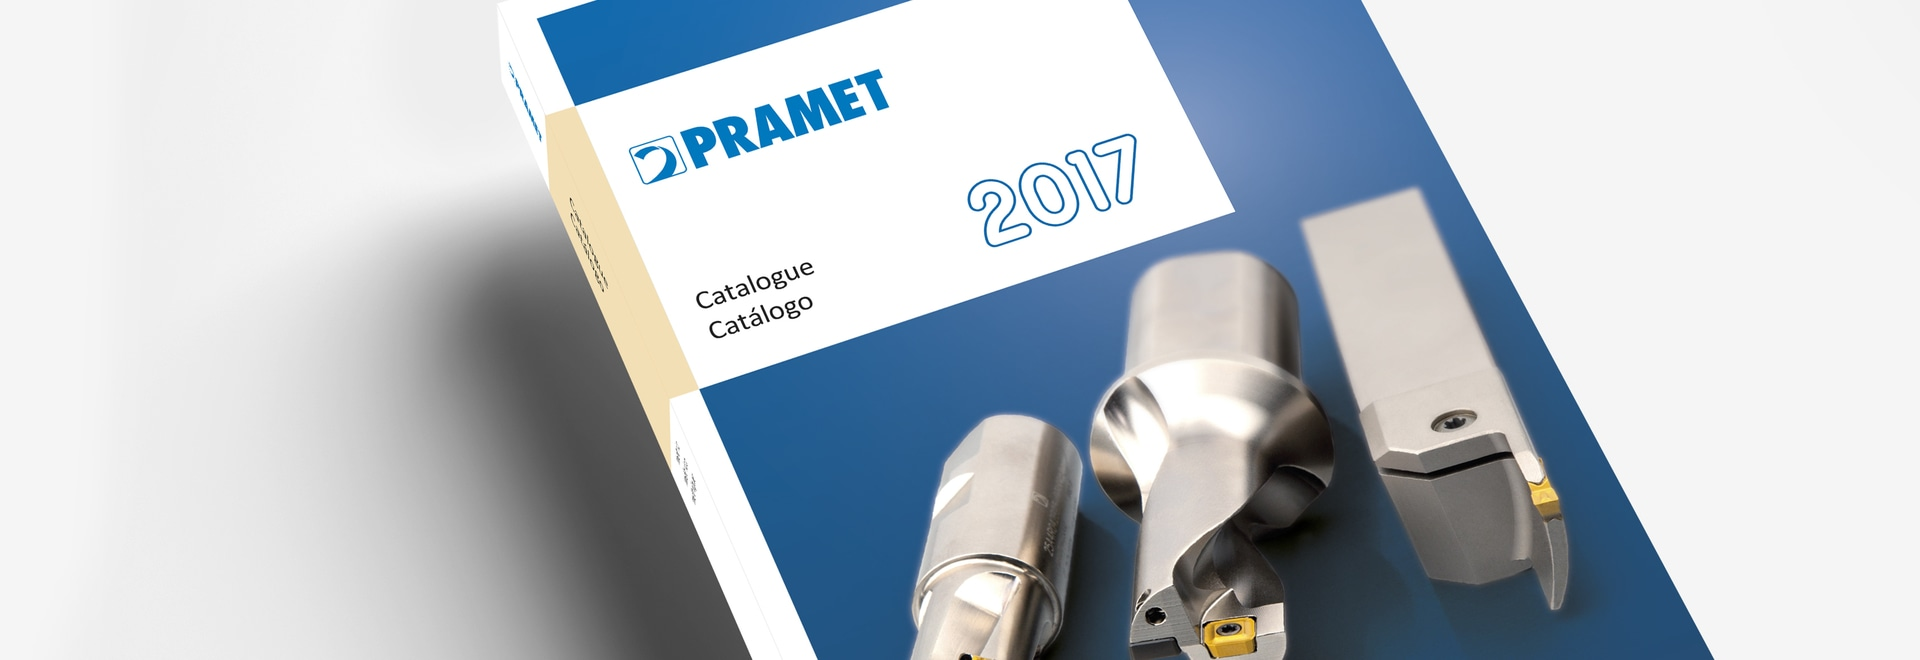 Pramet catalogue 2017